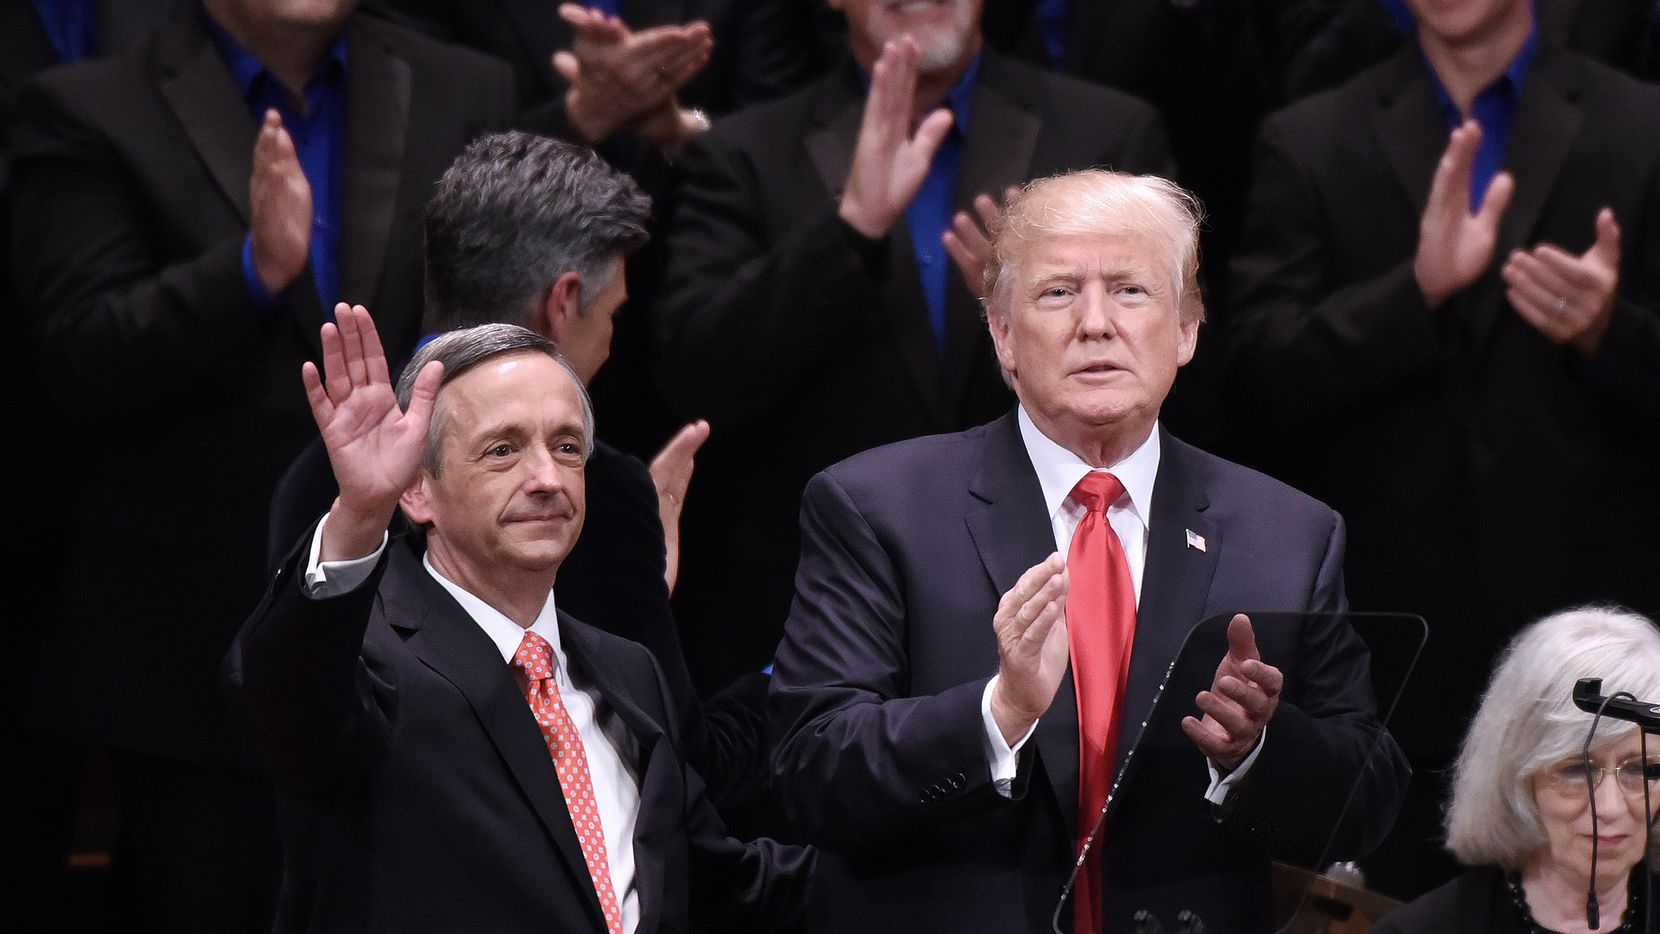 WASHINGTON, DC - JULY 01:  (AFP OUT) US President Donald Trump and Pastor Robert Jeffress participate in the Celebrate Freedom Rally at the John F. Kennedy Center for the Performing Arts on July 1, 2017  in Washington, DC.  (Photo by Olivier Douliery-Pool via Getty Images)